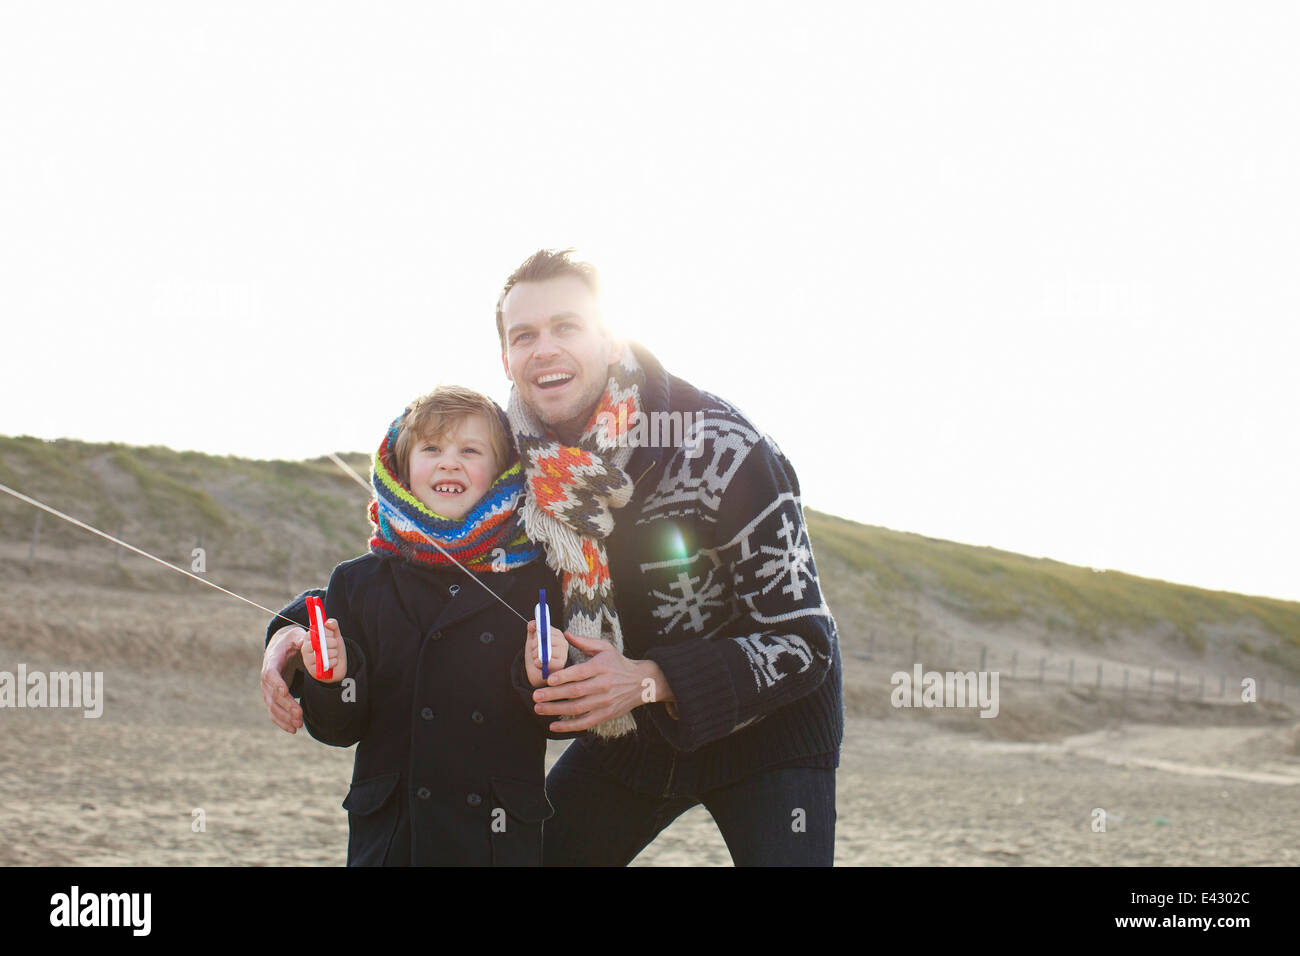 Mid adult man flying kite with son on beach, Bloemendaal aan Zee, Netherlands - Stock Image